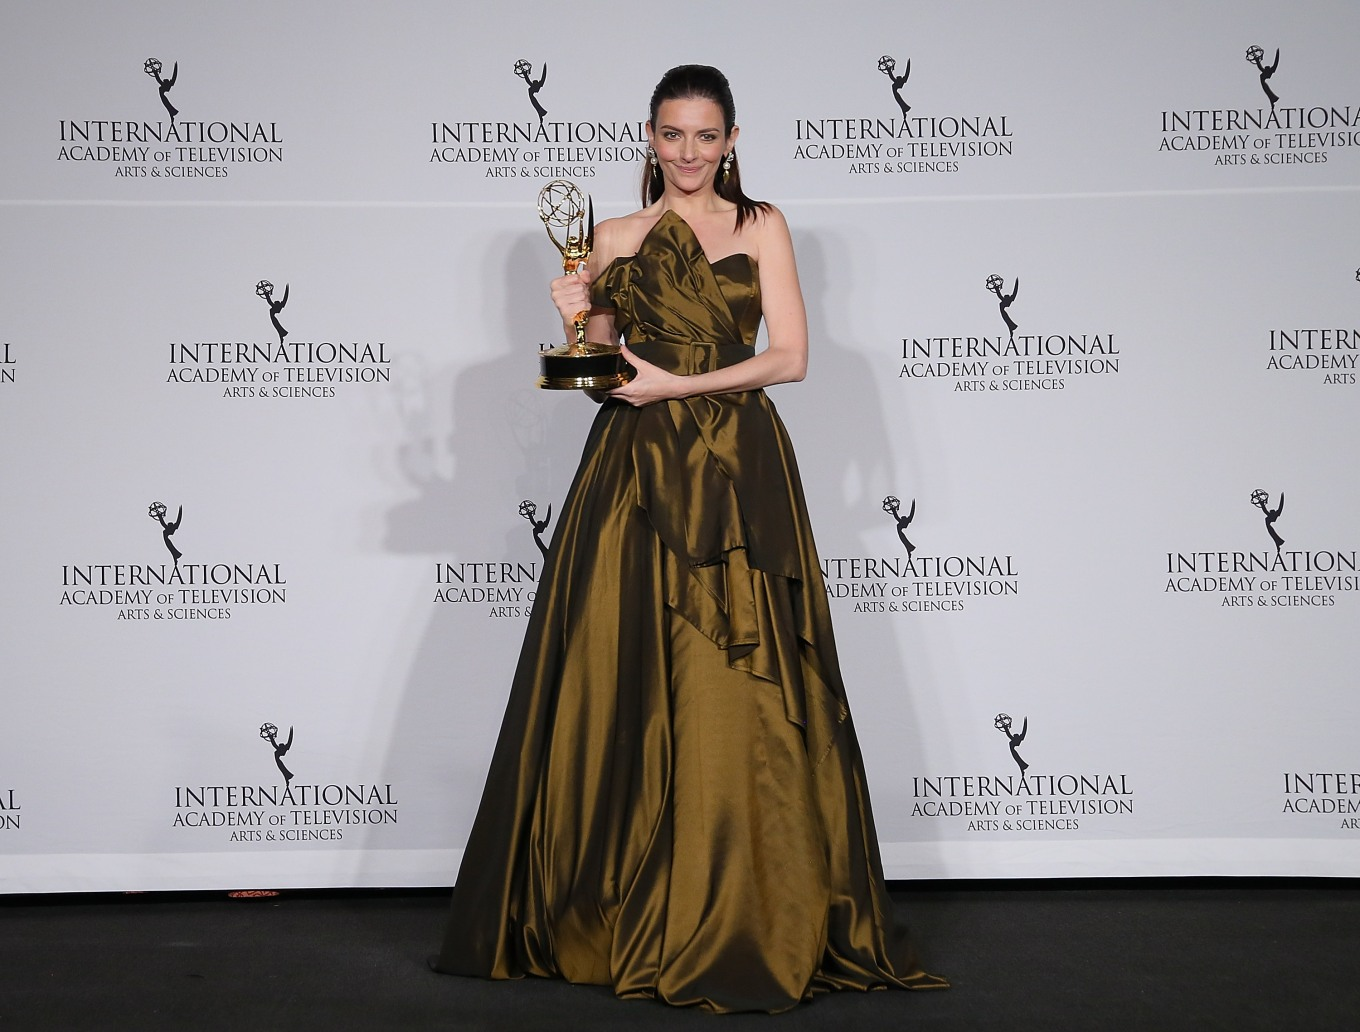 47th Annual International Emmy Awards